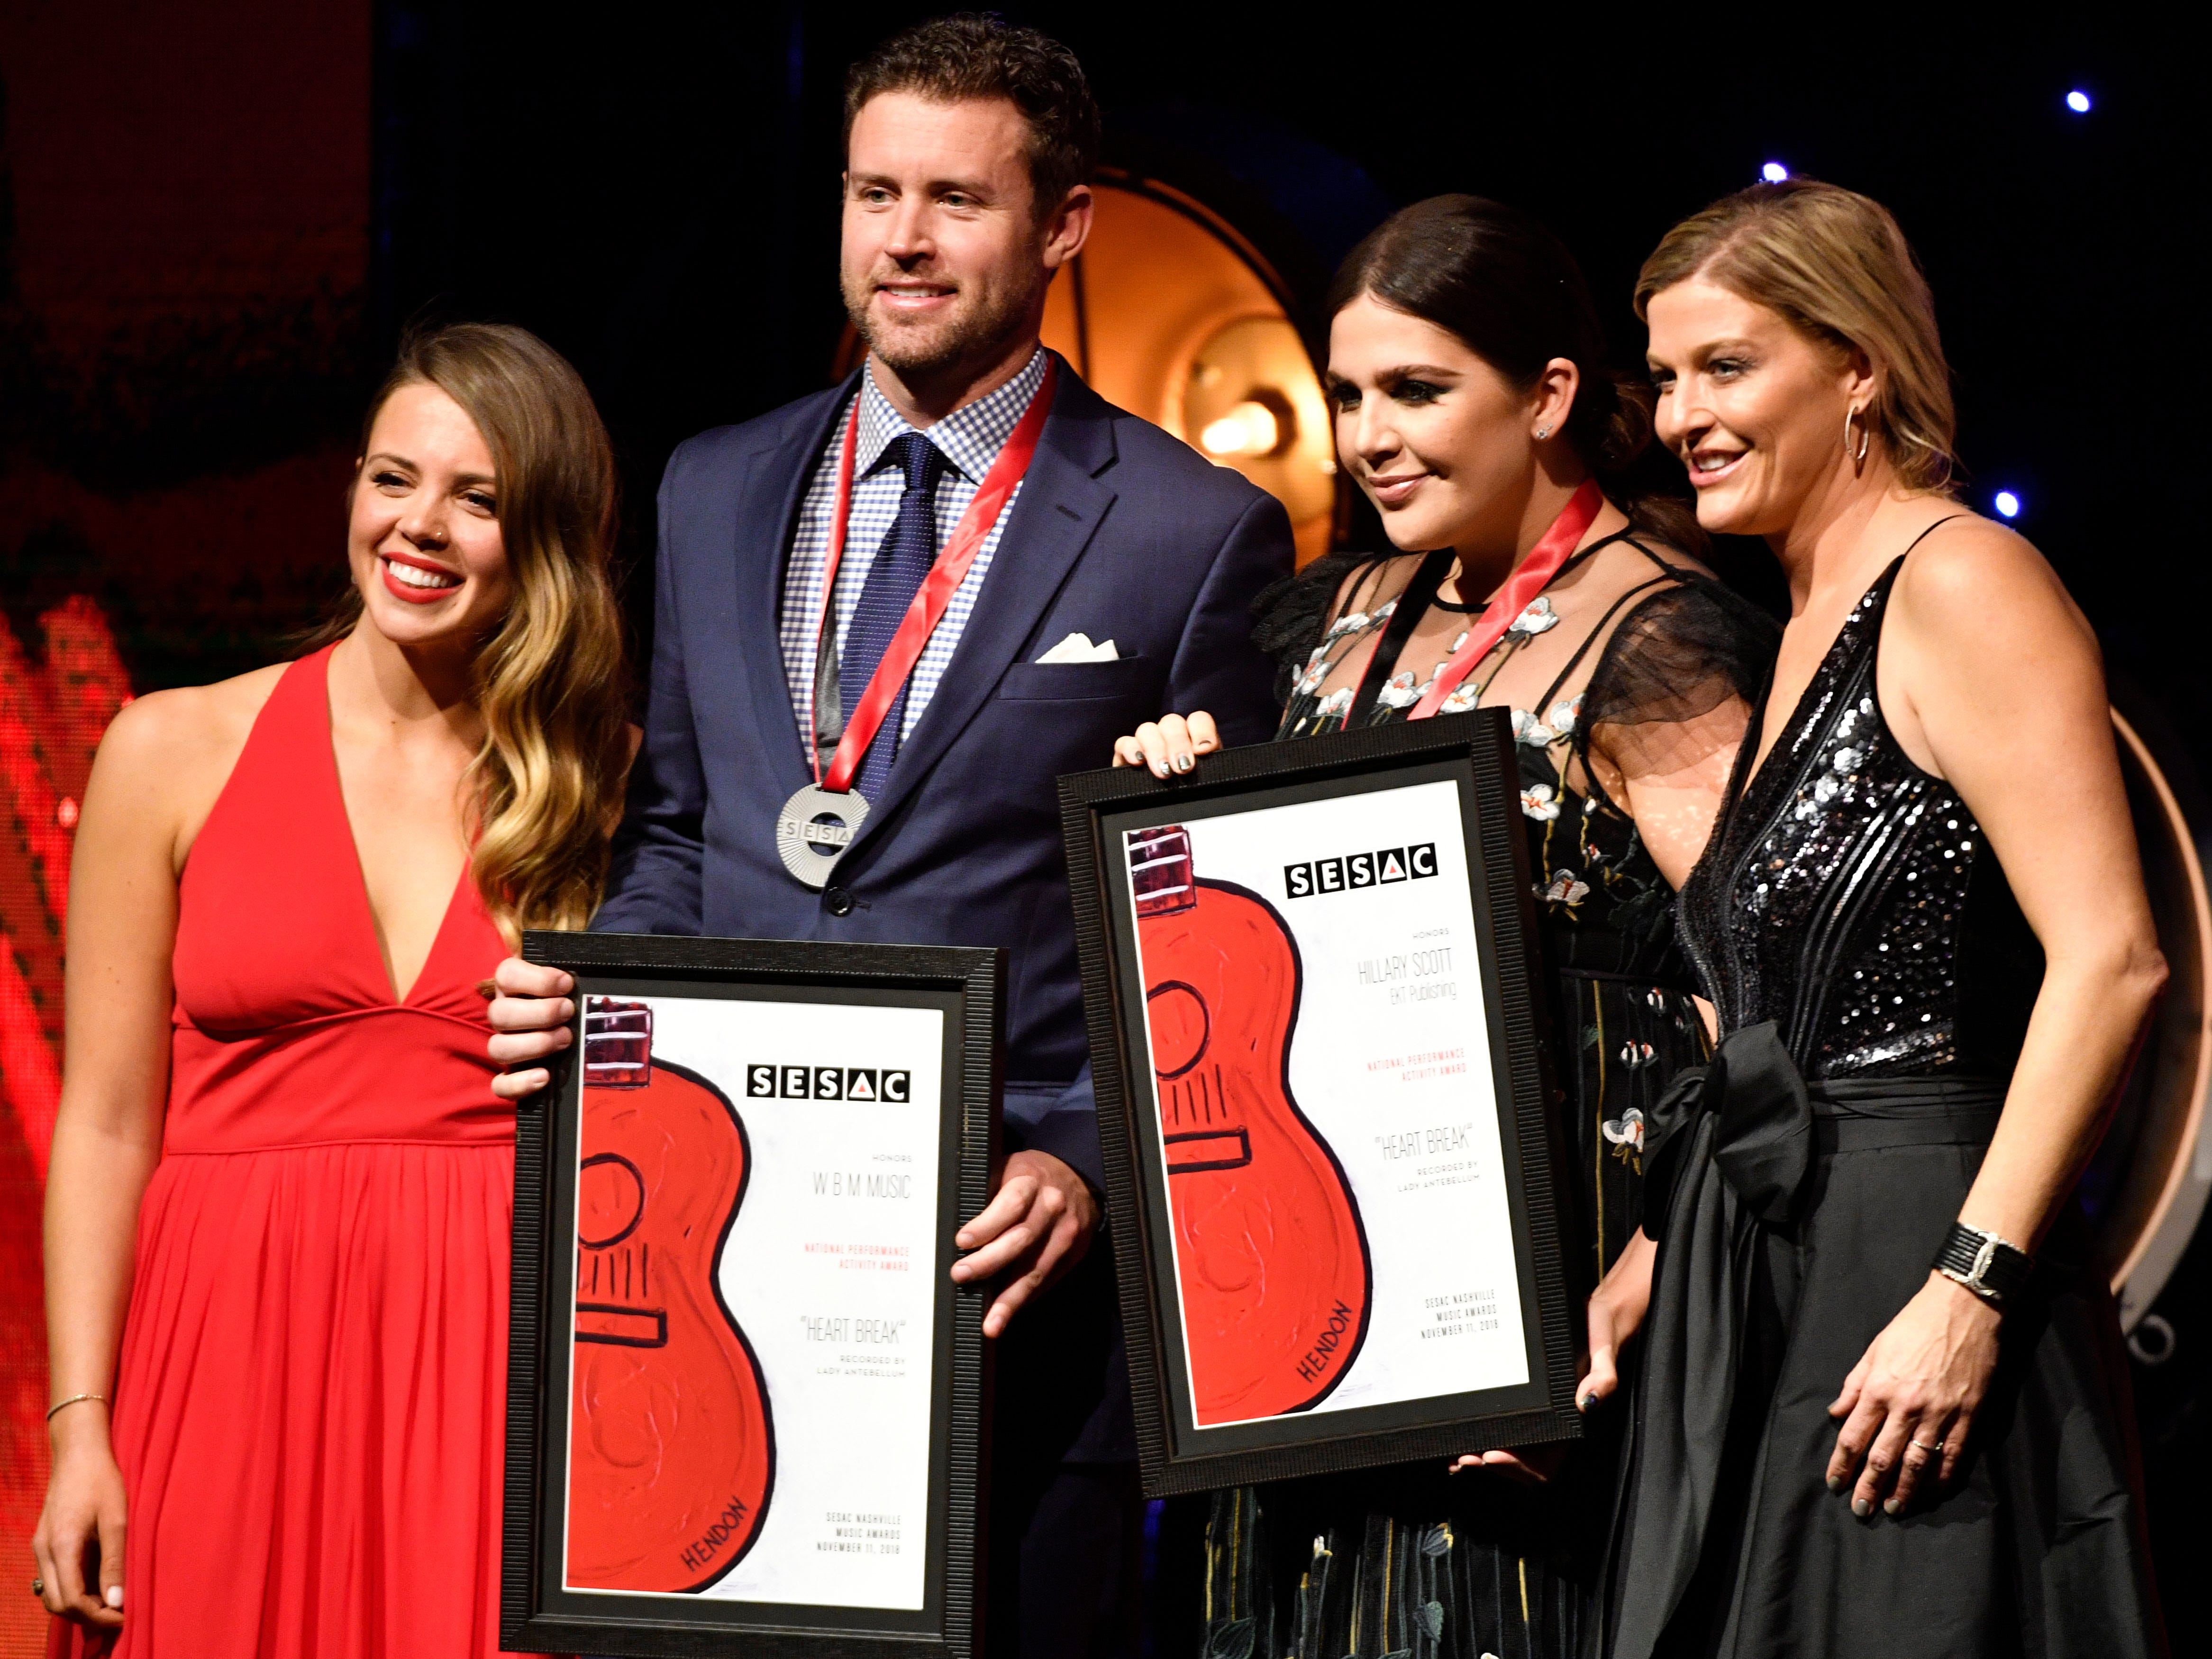 """""""HEART BREAK""""written by:Hillary Scottpublished by W.B.M. Music Corp, EKT Publishingrecorded by:Lady Antebellum at the SESAC Nashville Music Awards at the Country Music Hall of Fame and Museum Sunday Nov. 11, 2018, in Nashville, Tenn."""